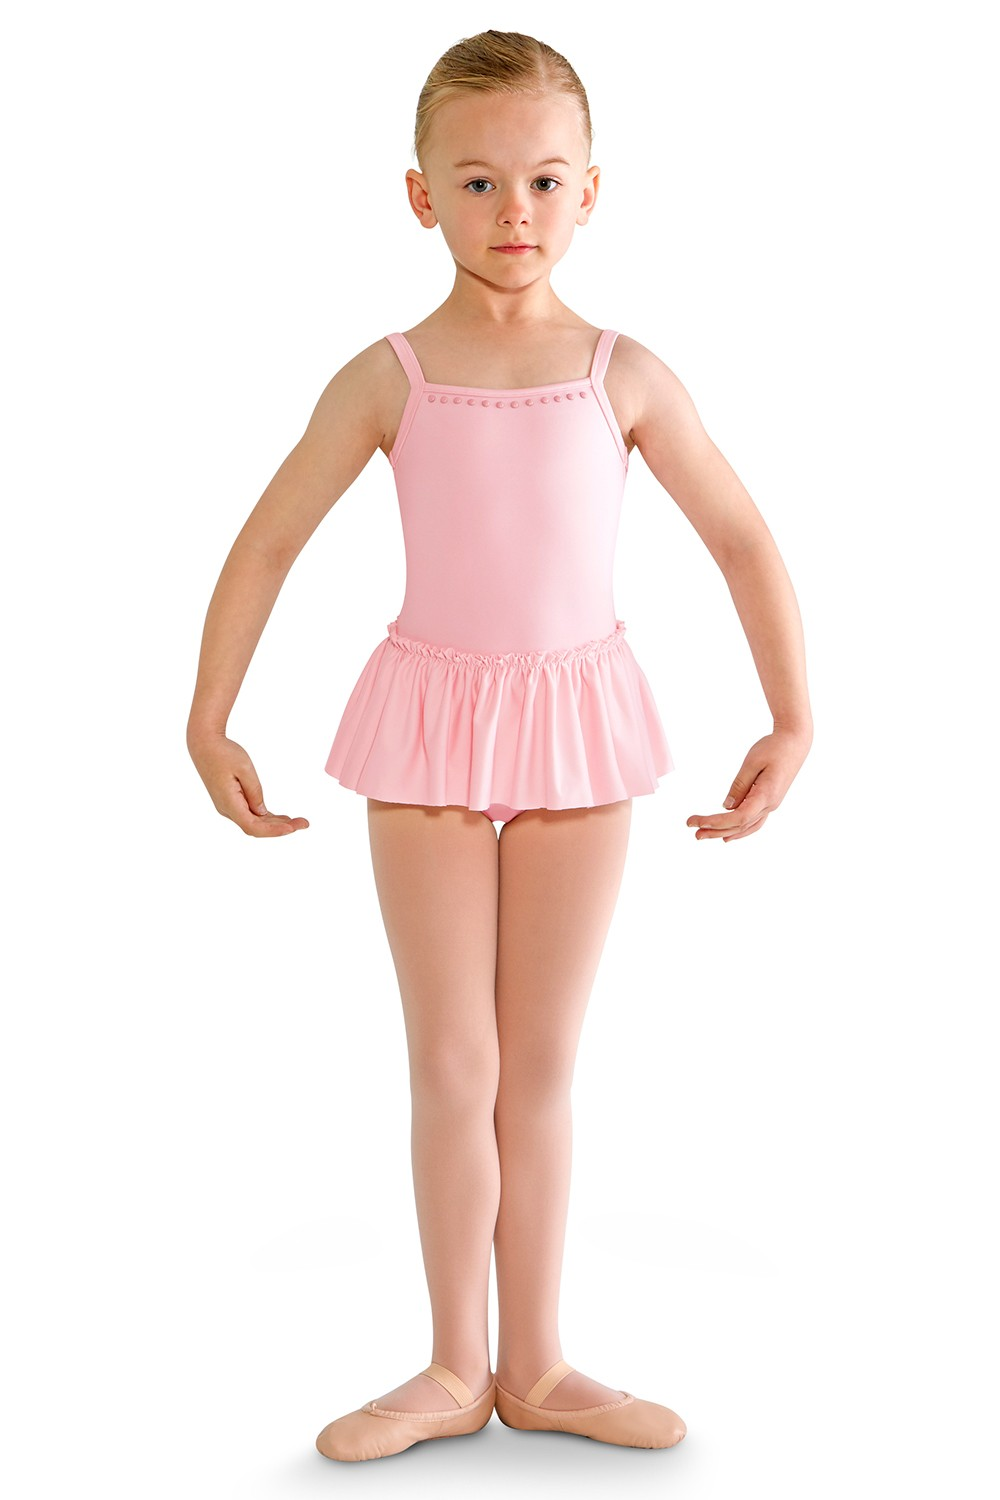 Pruie Children's Dance Leotards